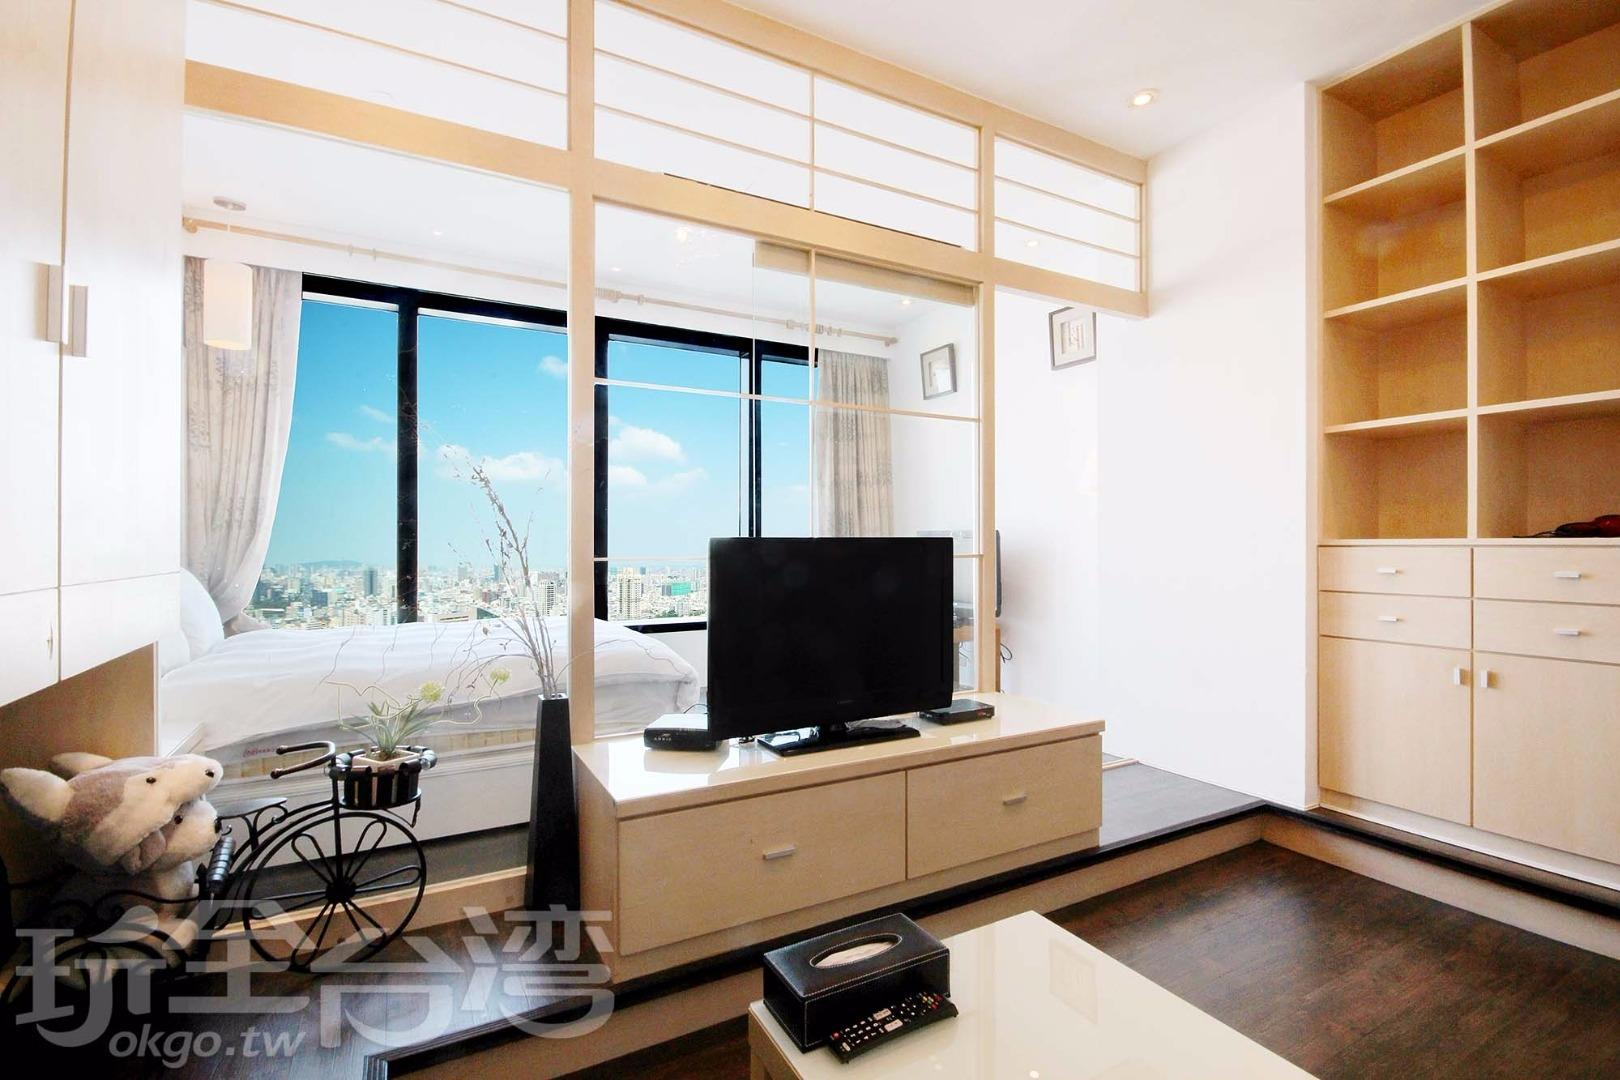 市景雙人房 (Double Room with City View)